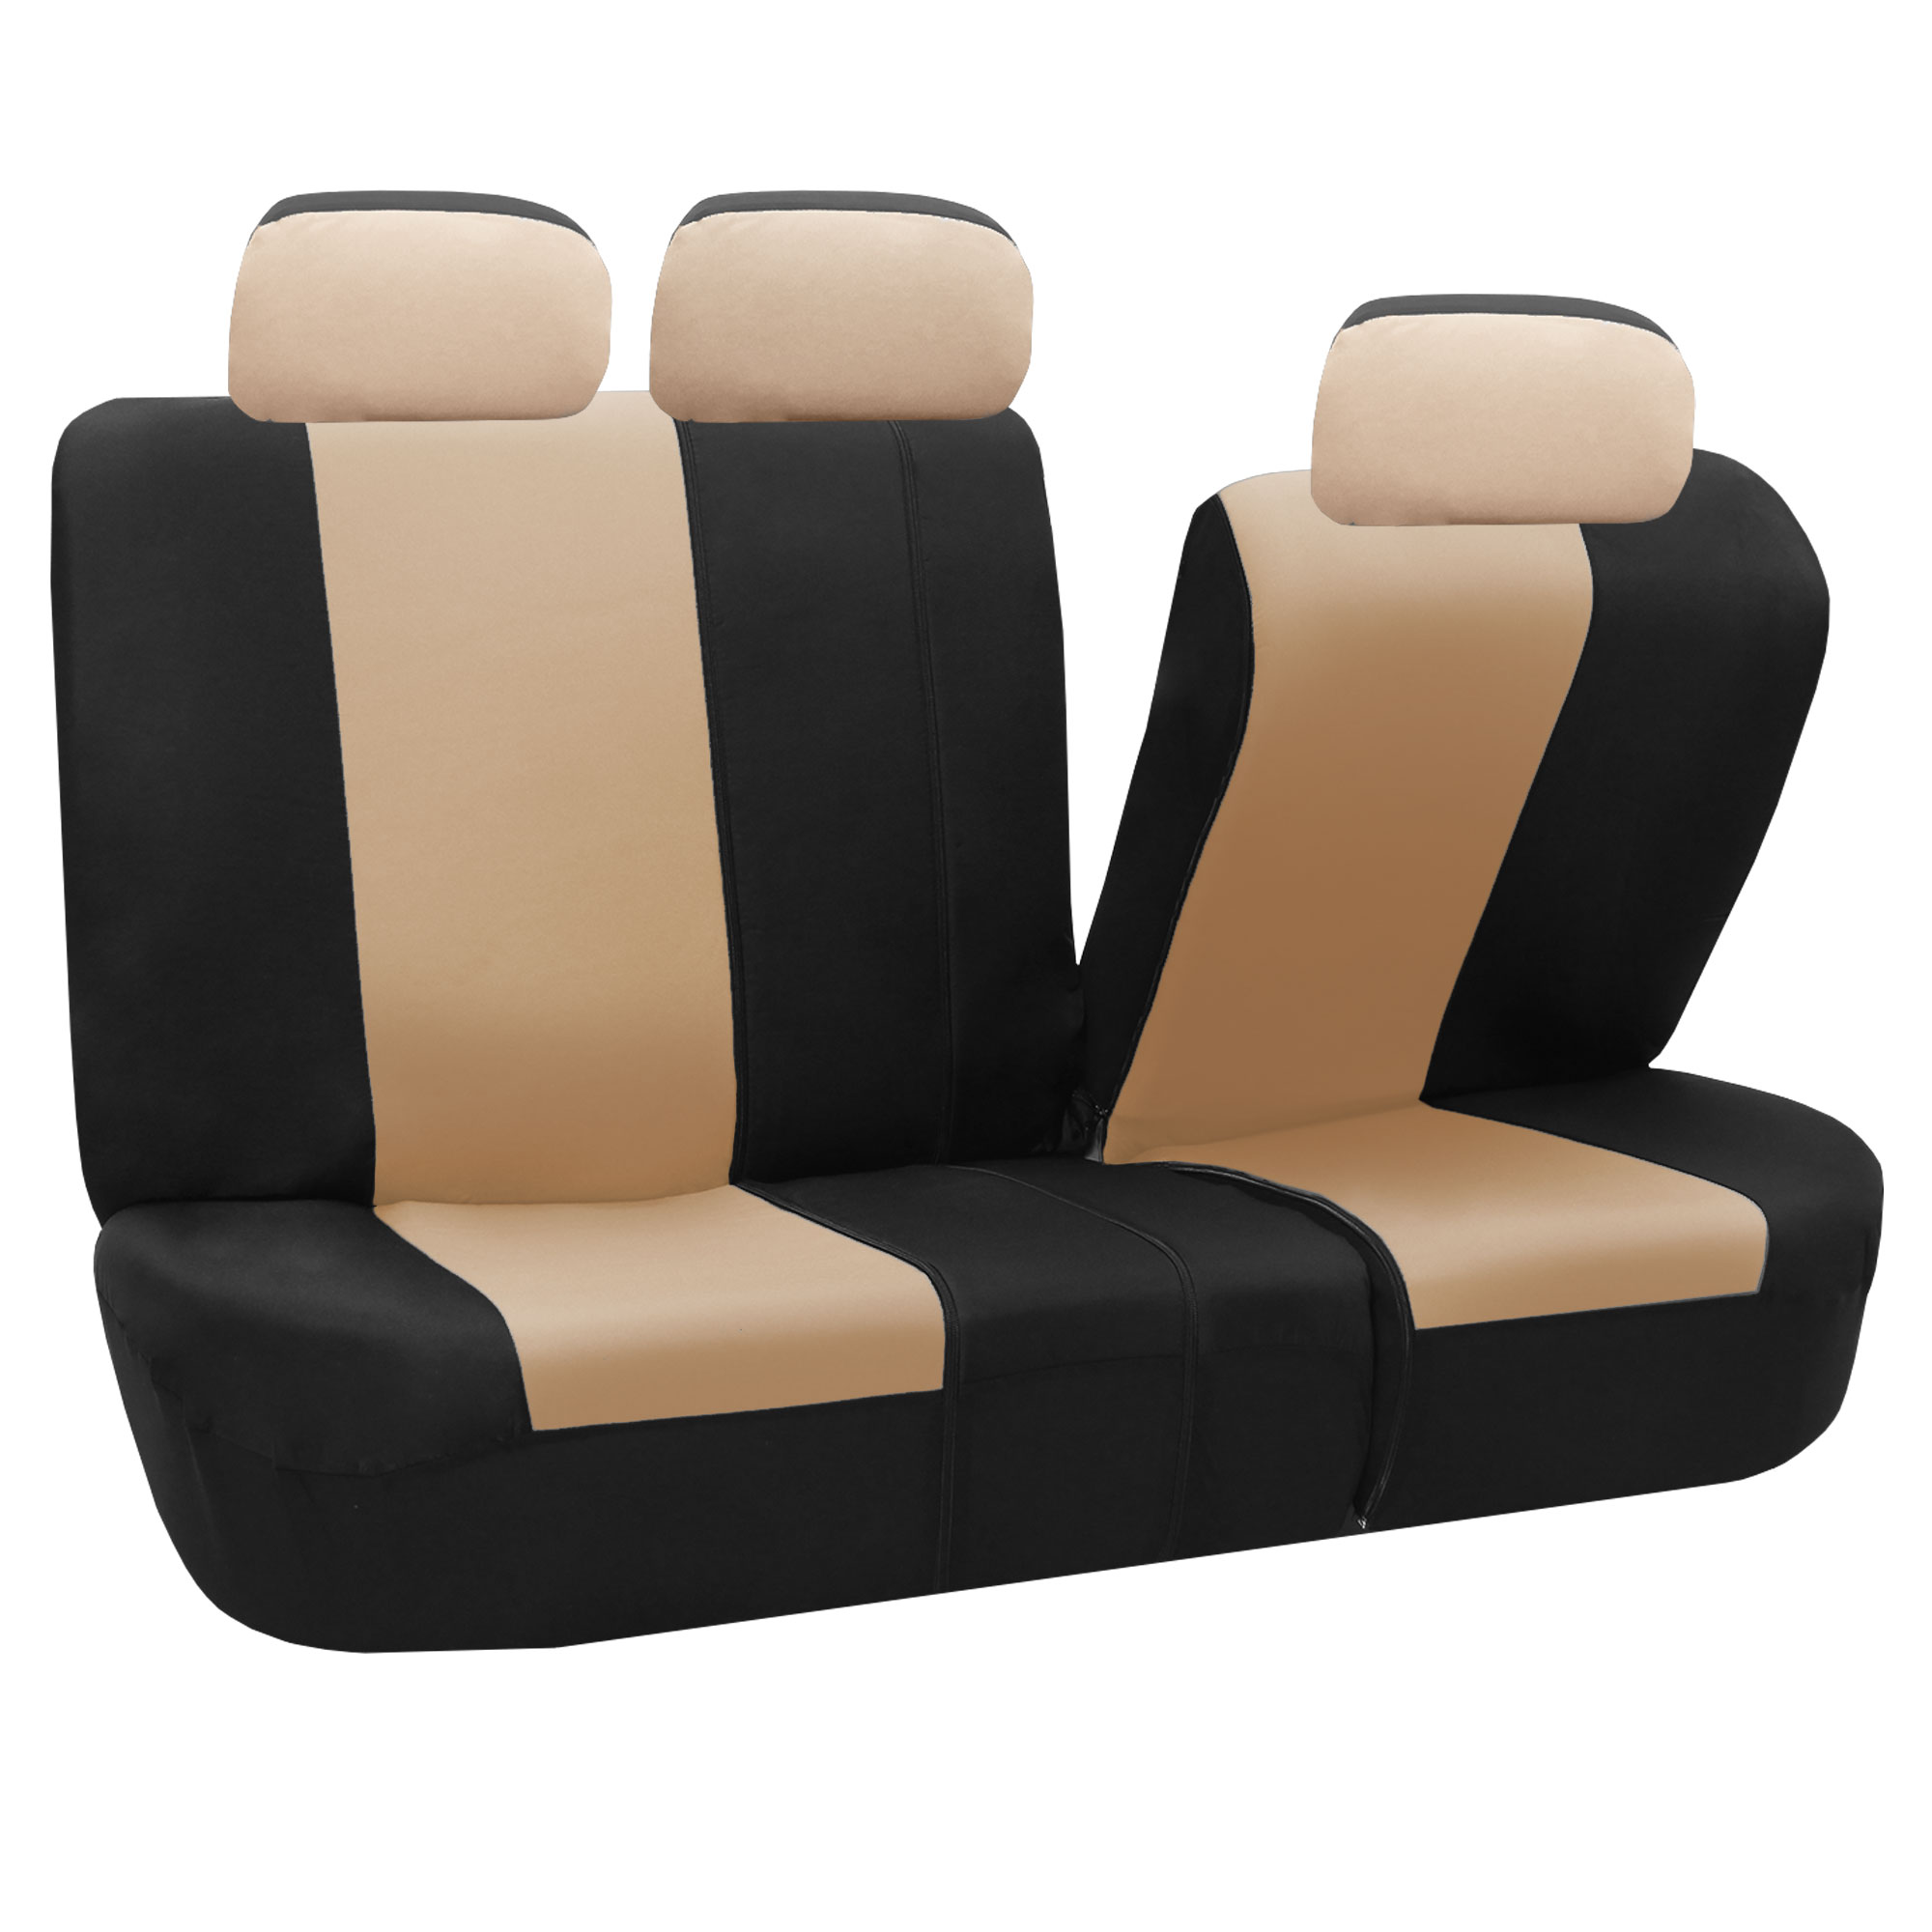 classic khaki full set car seat covers air bag safe split bench ready ebay. Black Bedroom Furniture Sets. Home Design Ideas